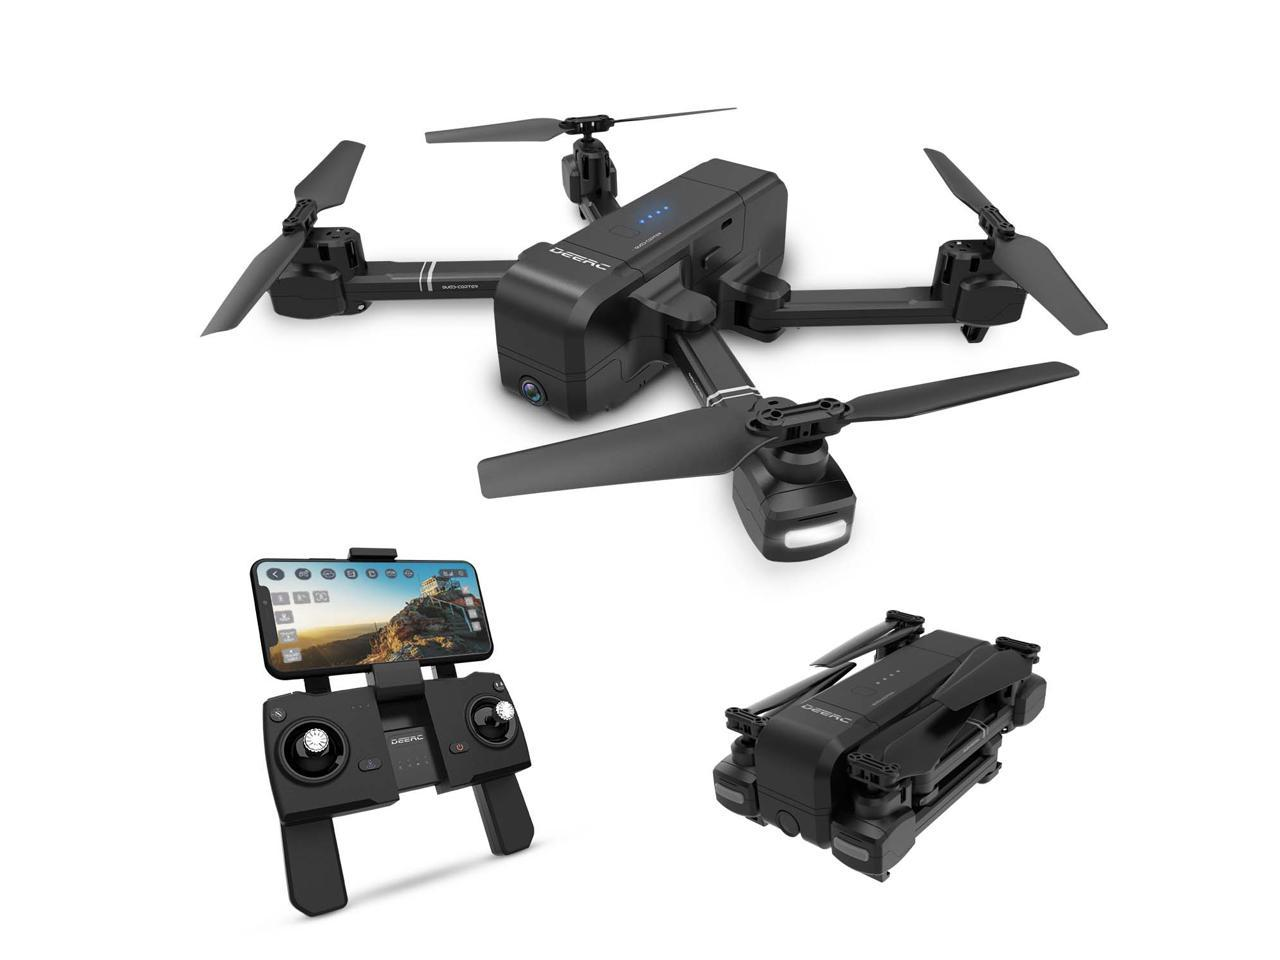 DEERC Foldable GPS Wifi FPV Drone with 1080P Camera, Gesture Photo/Video, Custom Flight, DE25, Black